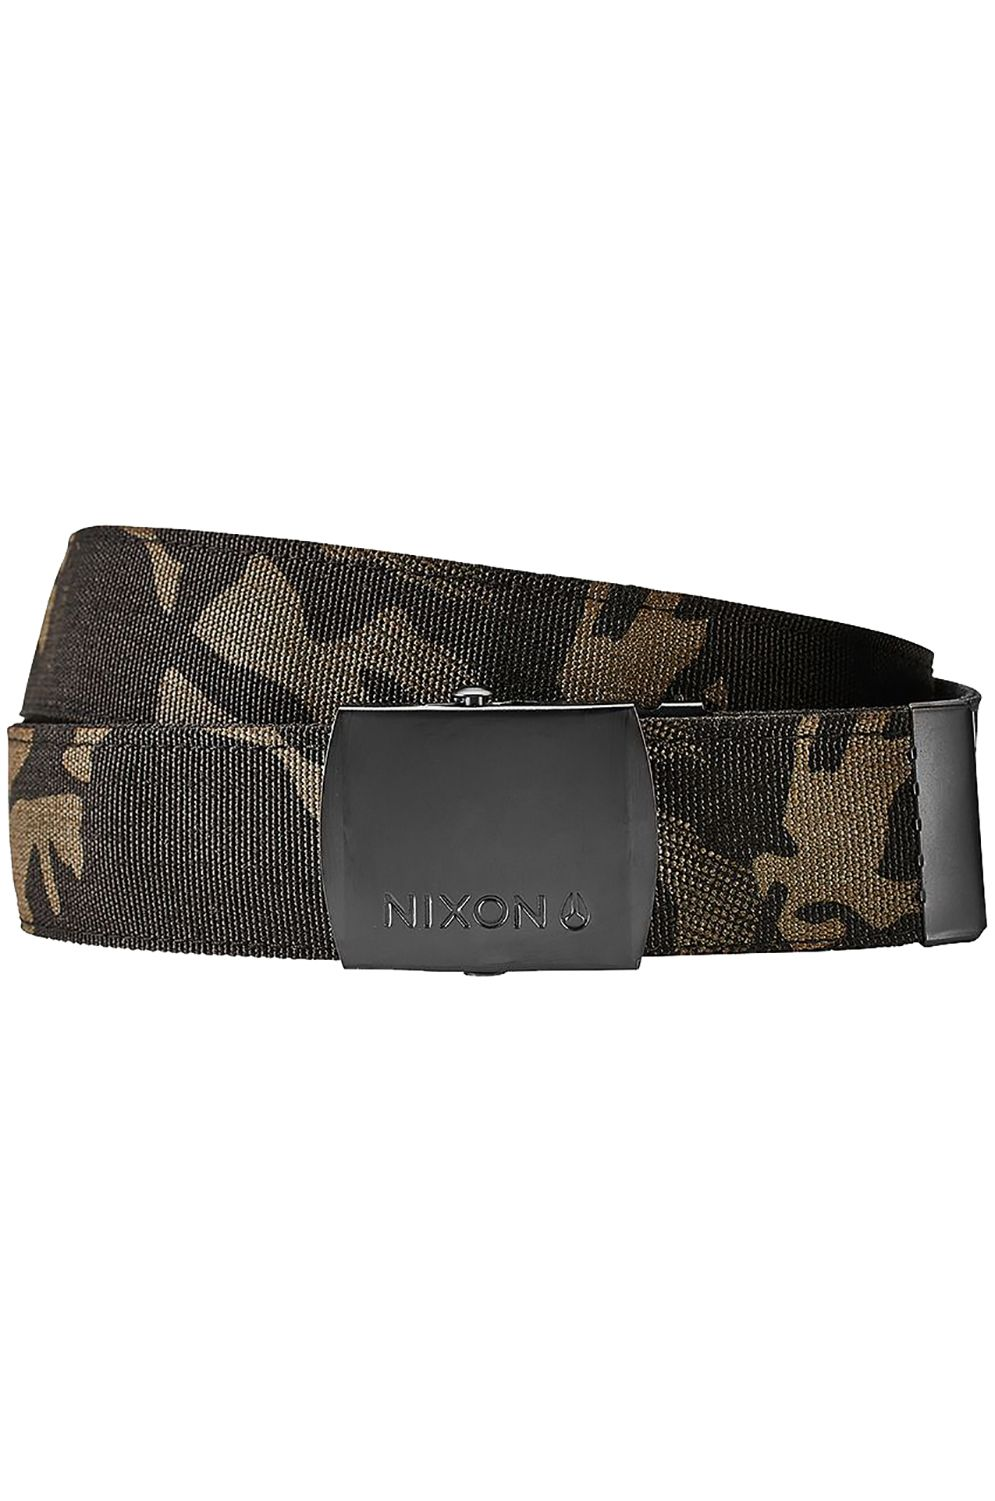 Nixon Belt BASIS Black Multicam